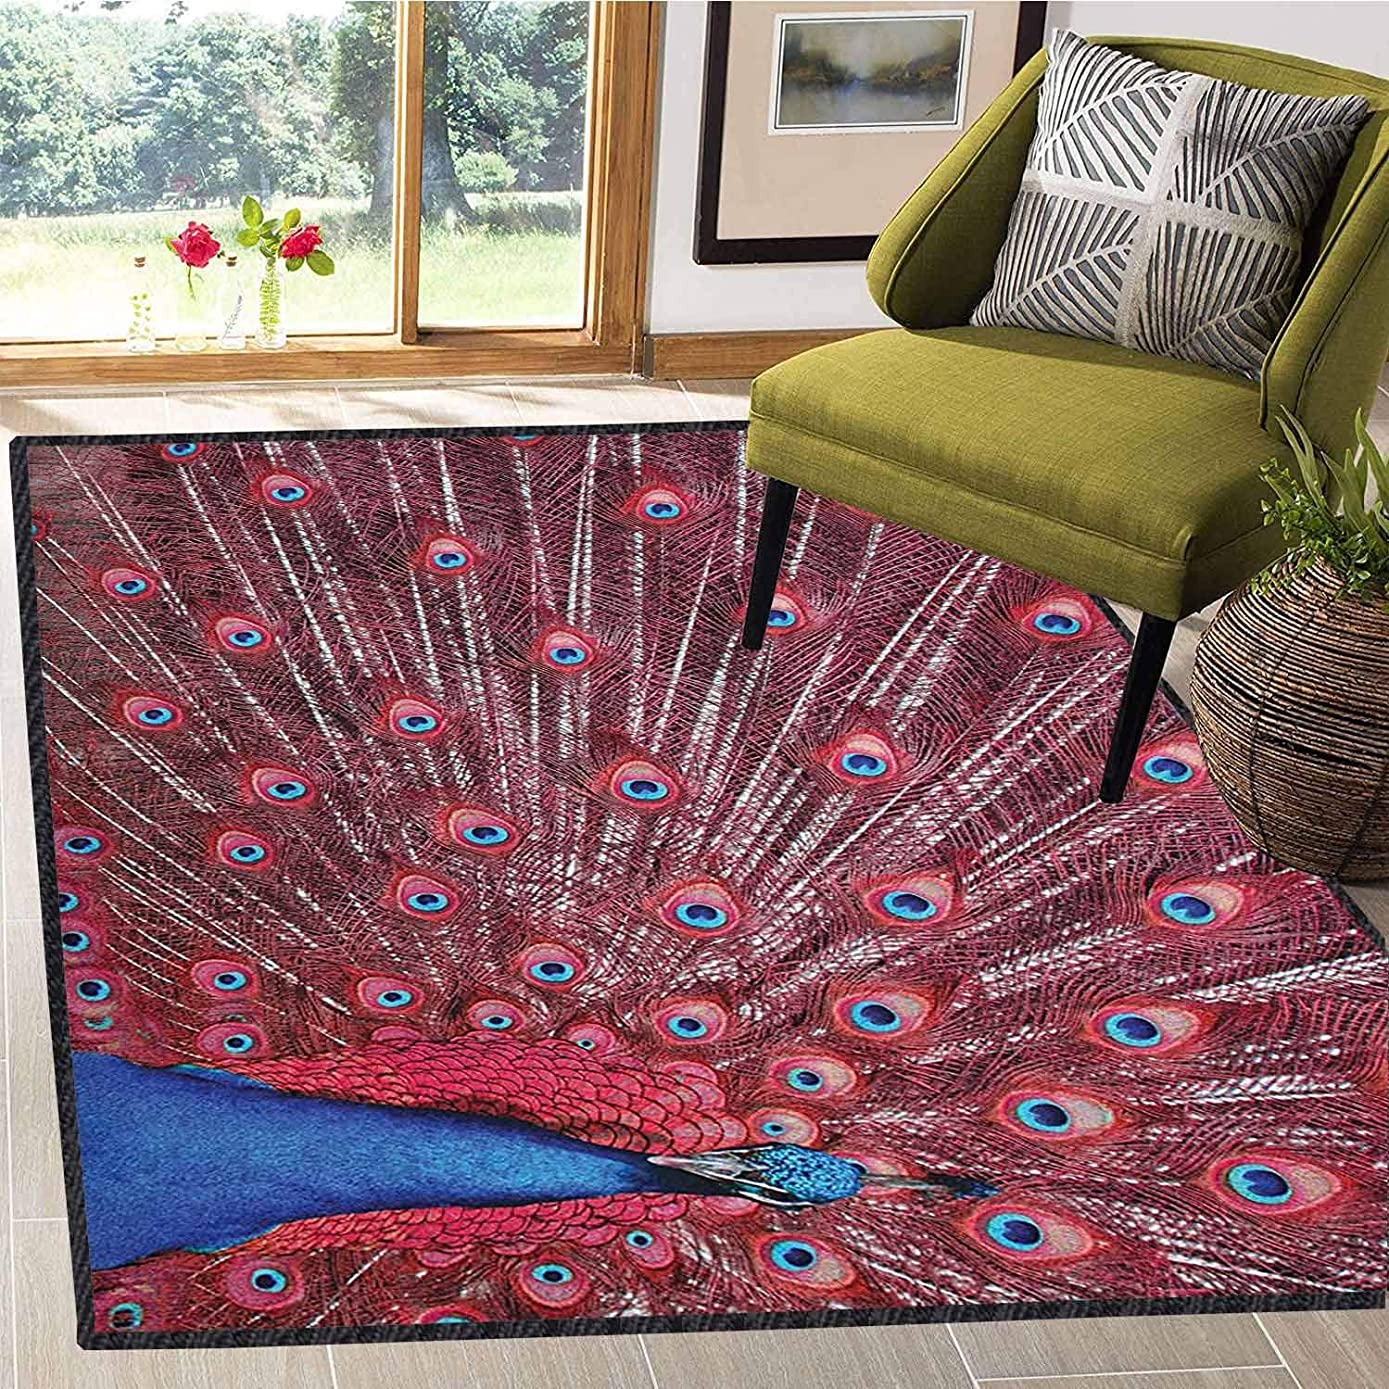 Throw Carpet Rugs Peacock Water Absorption and Quick Drying A Beautiful Male Displays His Plumage Majestic Surreal Wildlife Theme Artwork Burgundy Blue 4X6 Ft